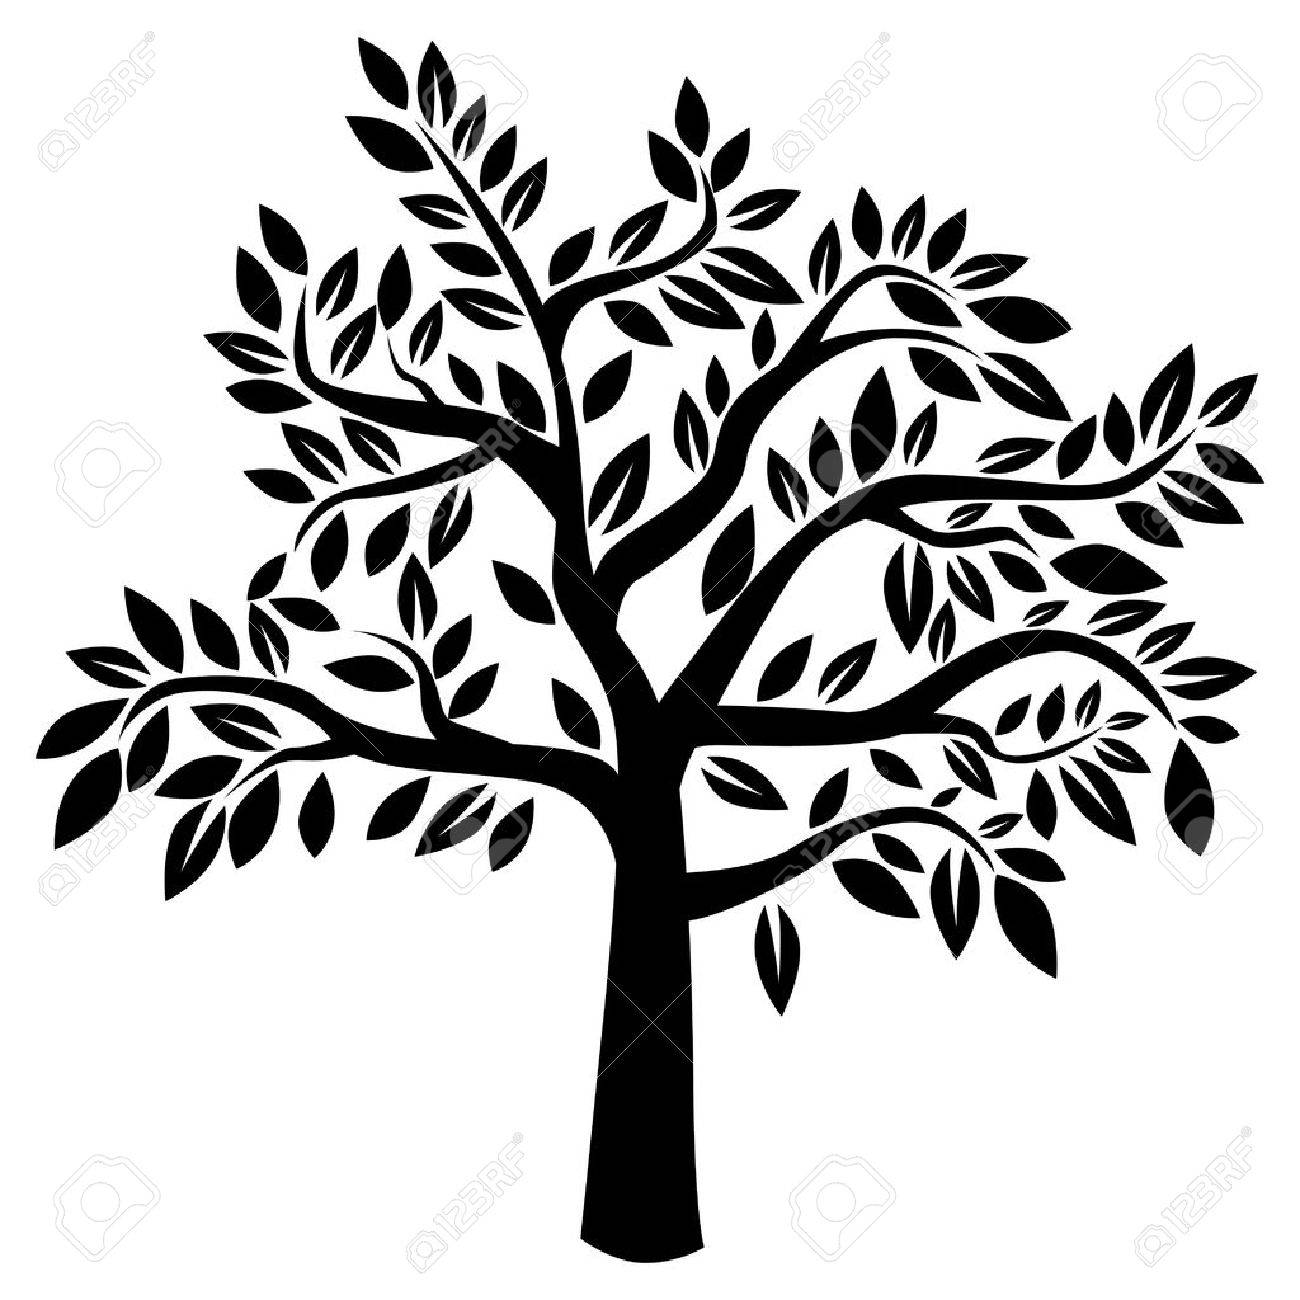 Silhouette of tree on white background  Vector illustration Stock Vector - 19420008